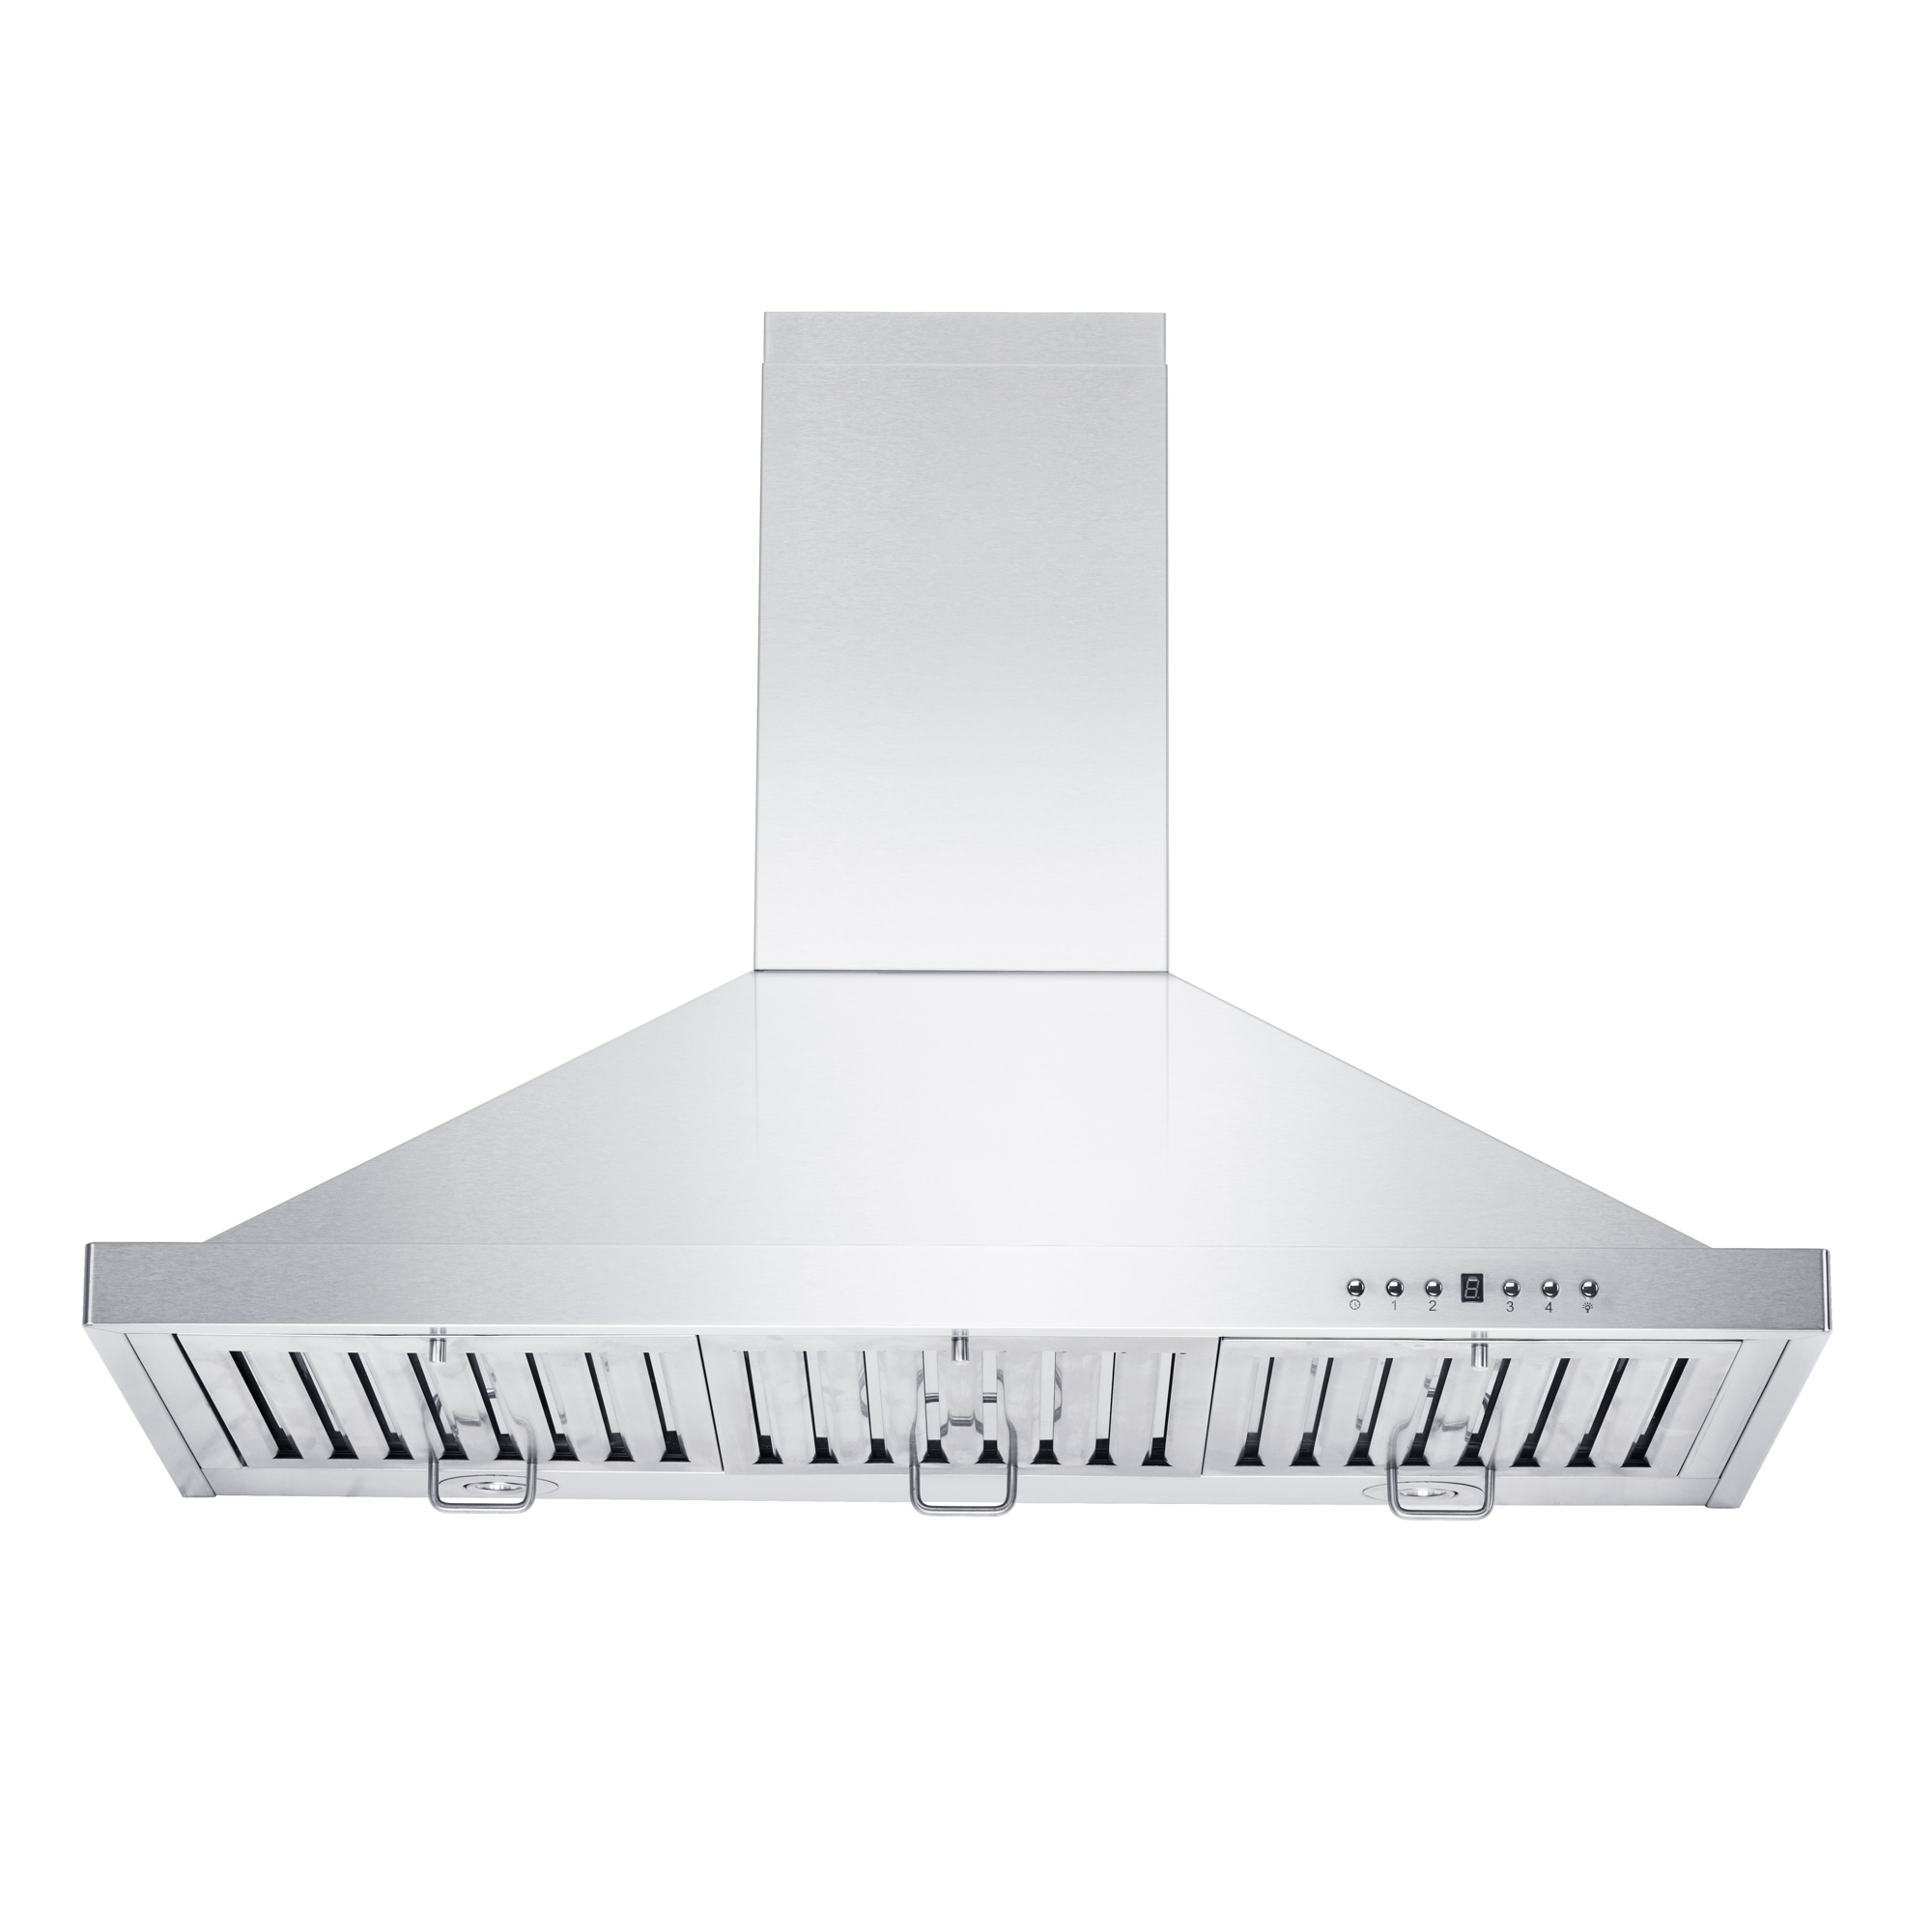 zline-stainless-steel-wall-mounted-range-hood-KB-new-under.jpg